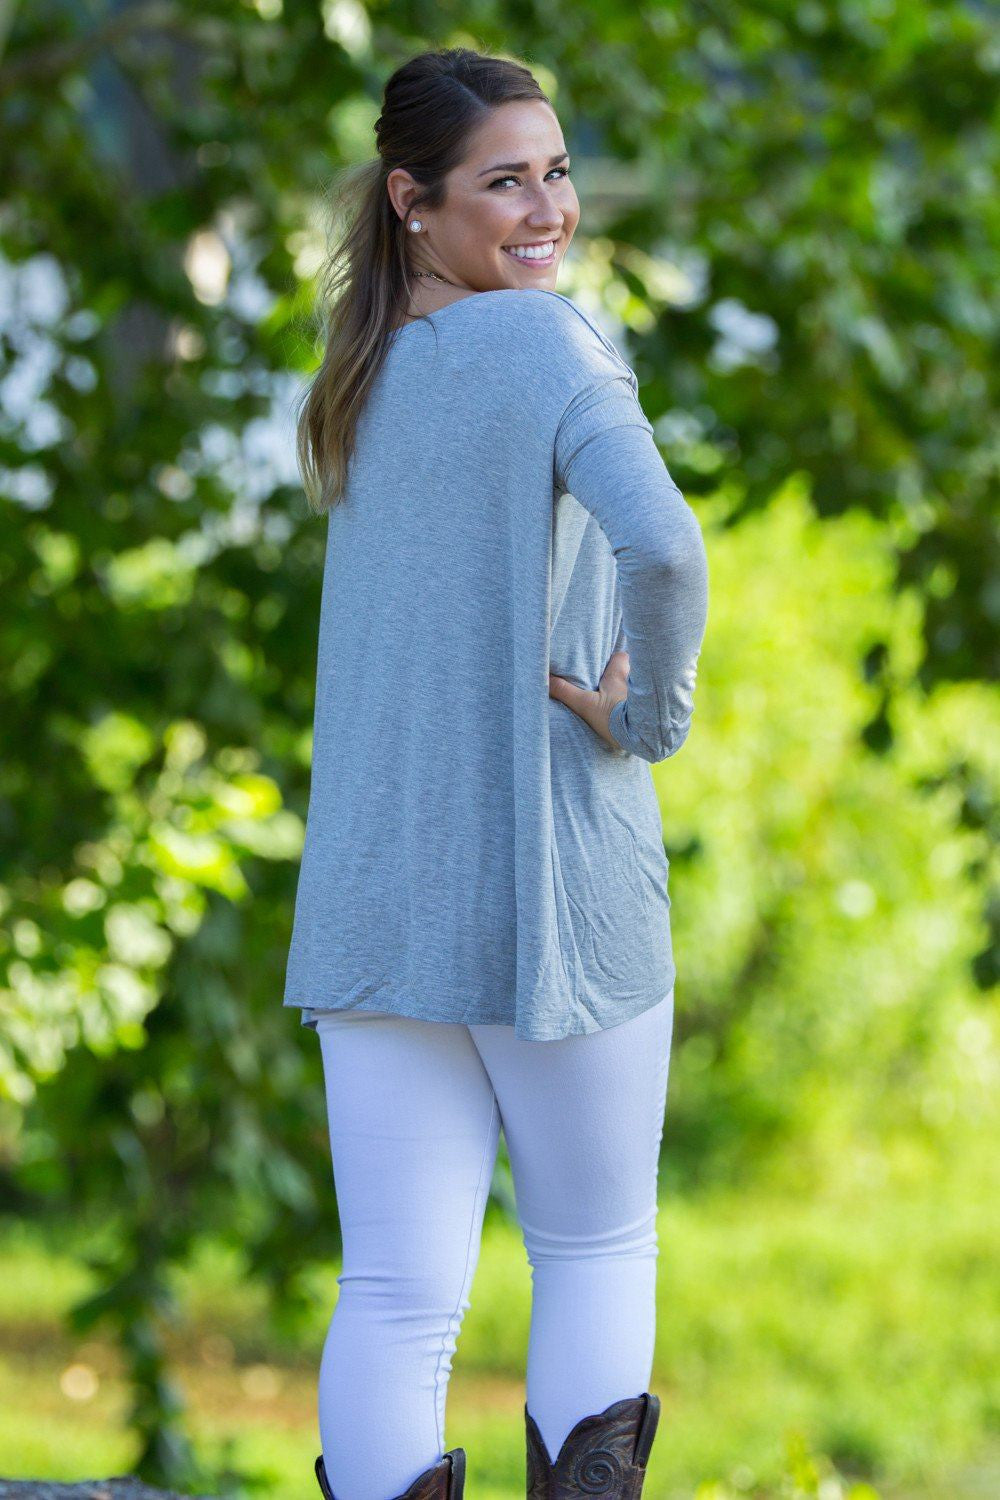 Long Sleeve Piko Top - Heather Grey - Piko Clothing